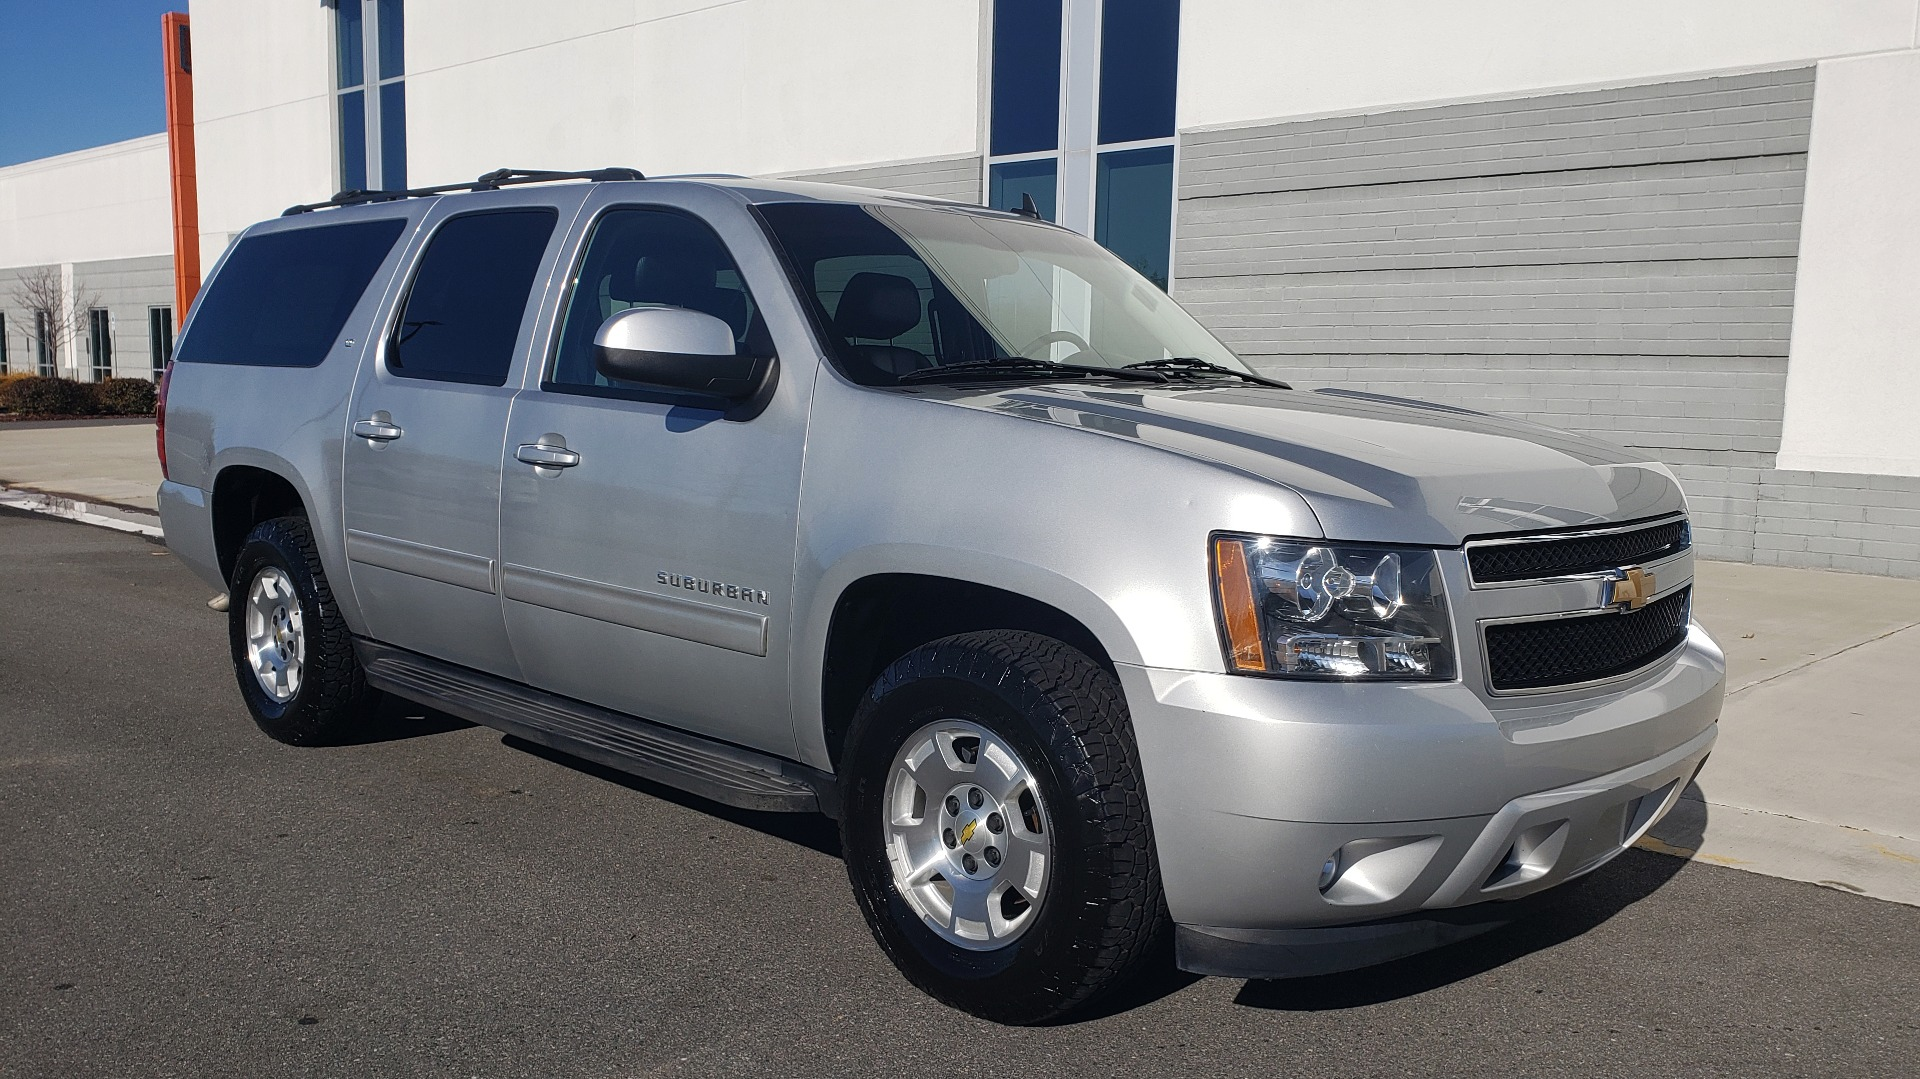 Used 2013 Chevrolet SUBURBAN LT / 2WD / 5.3L V8 / 6-SPD AUTO / LEATHER 3-ROW SEATS for sale Sold at Formula Imports in Charlotte NC 28227 6